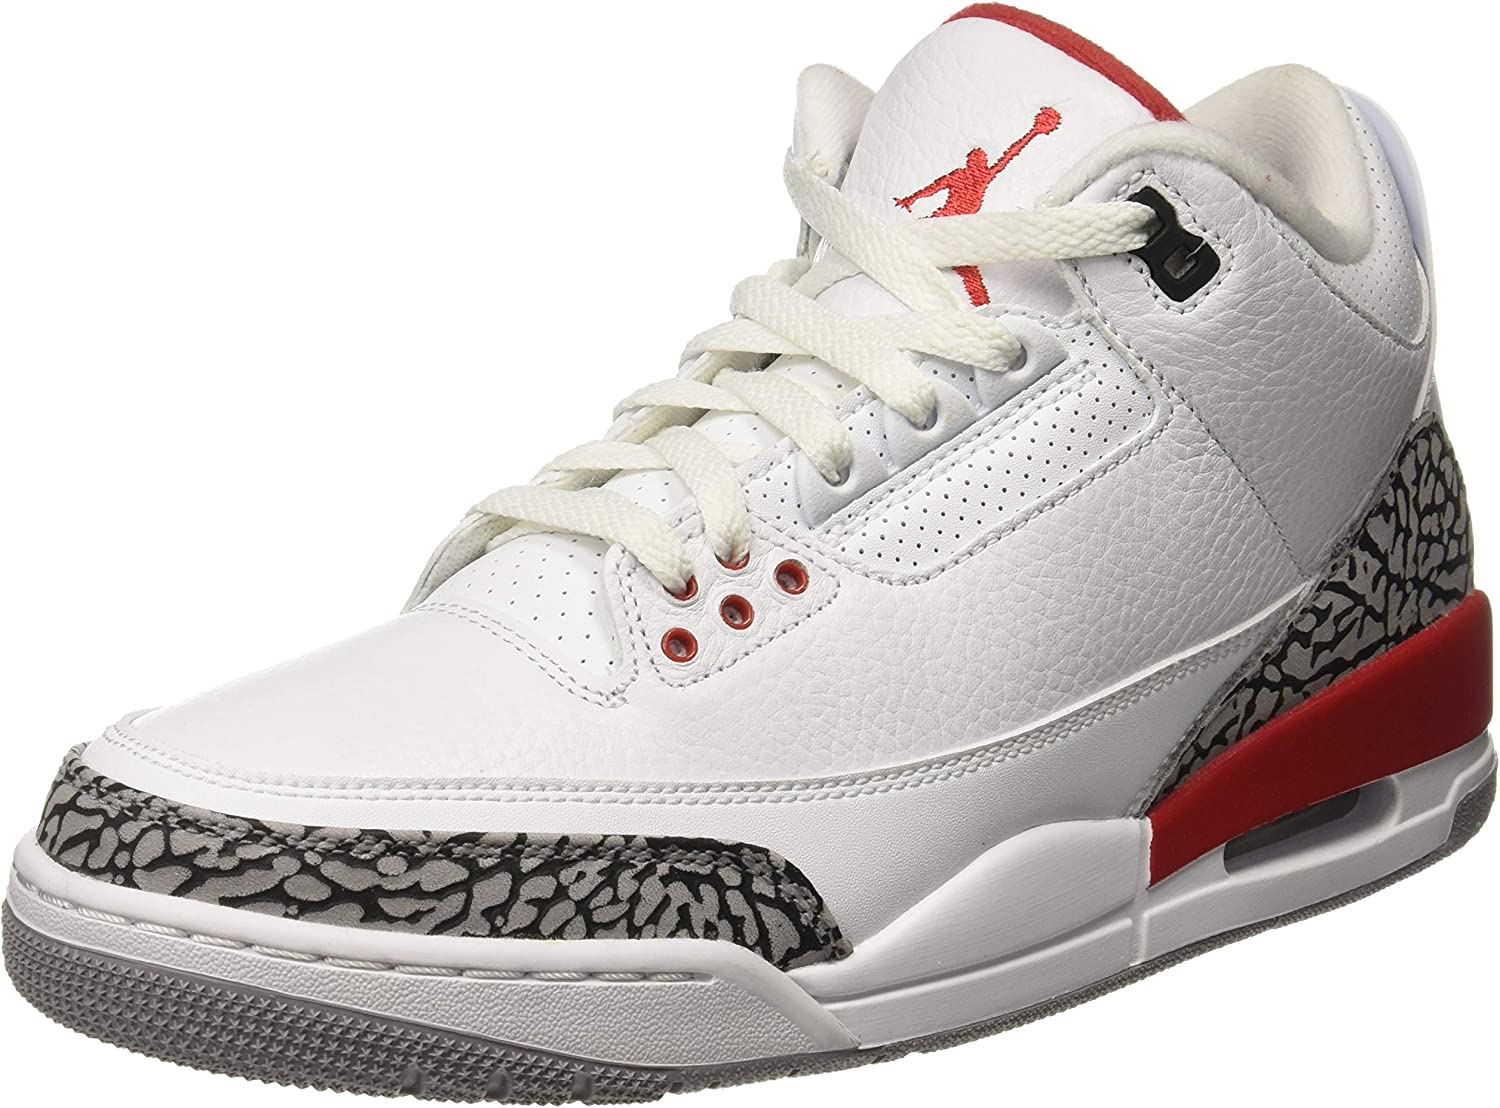 Romance Planificado Más bien  Amazon.com | AIR JORDAN 3 Retro 'Katrina' - 136064-116 - Size | Basketball